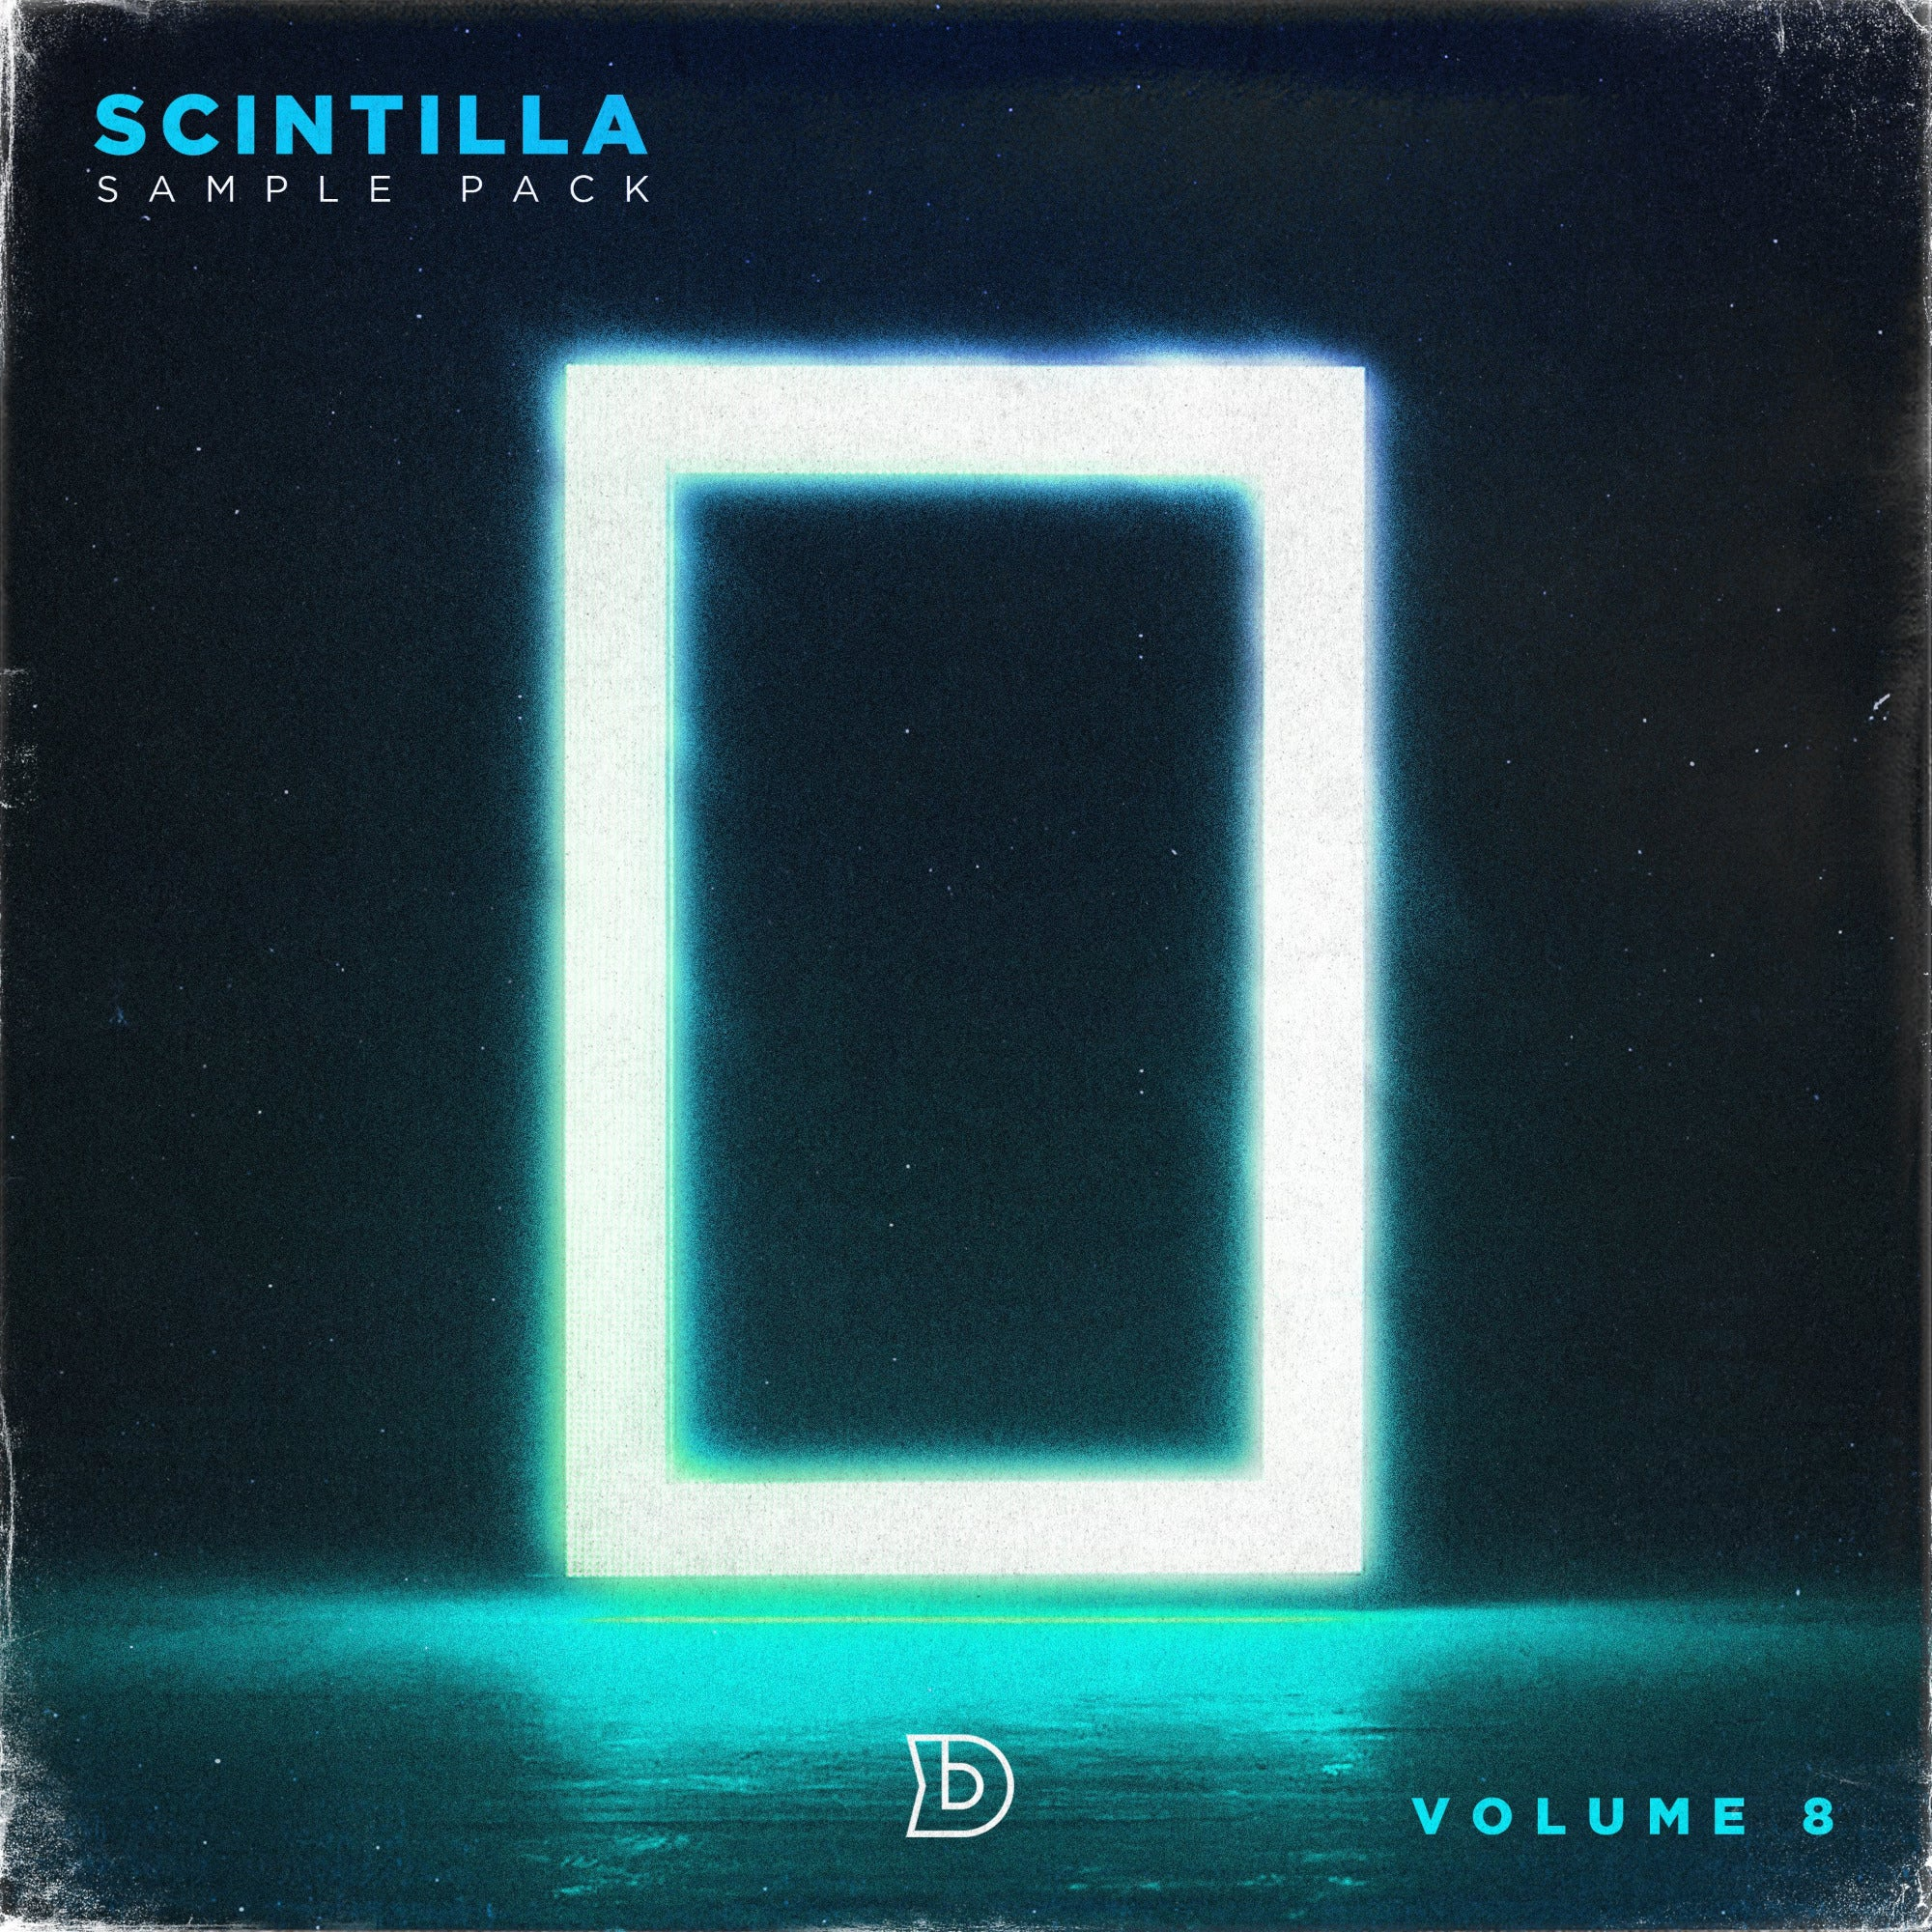 Scintilla Vol.8